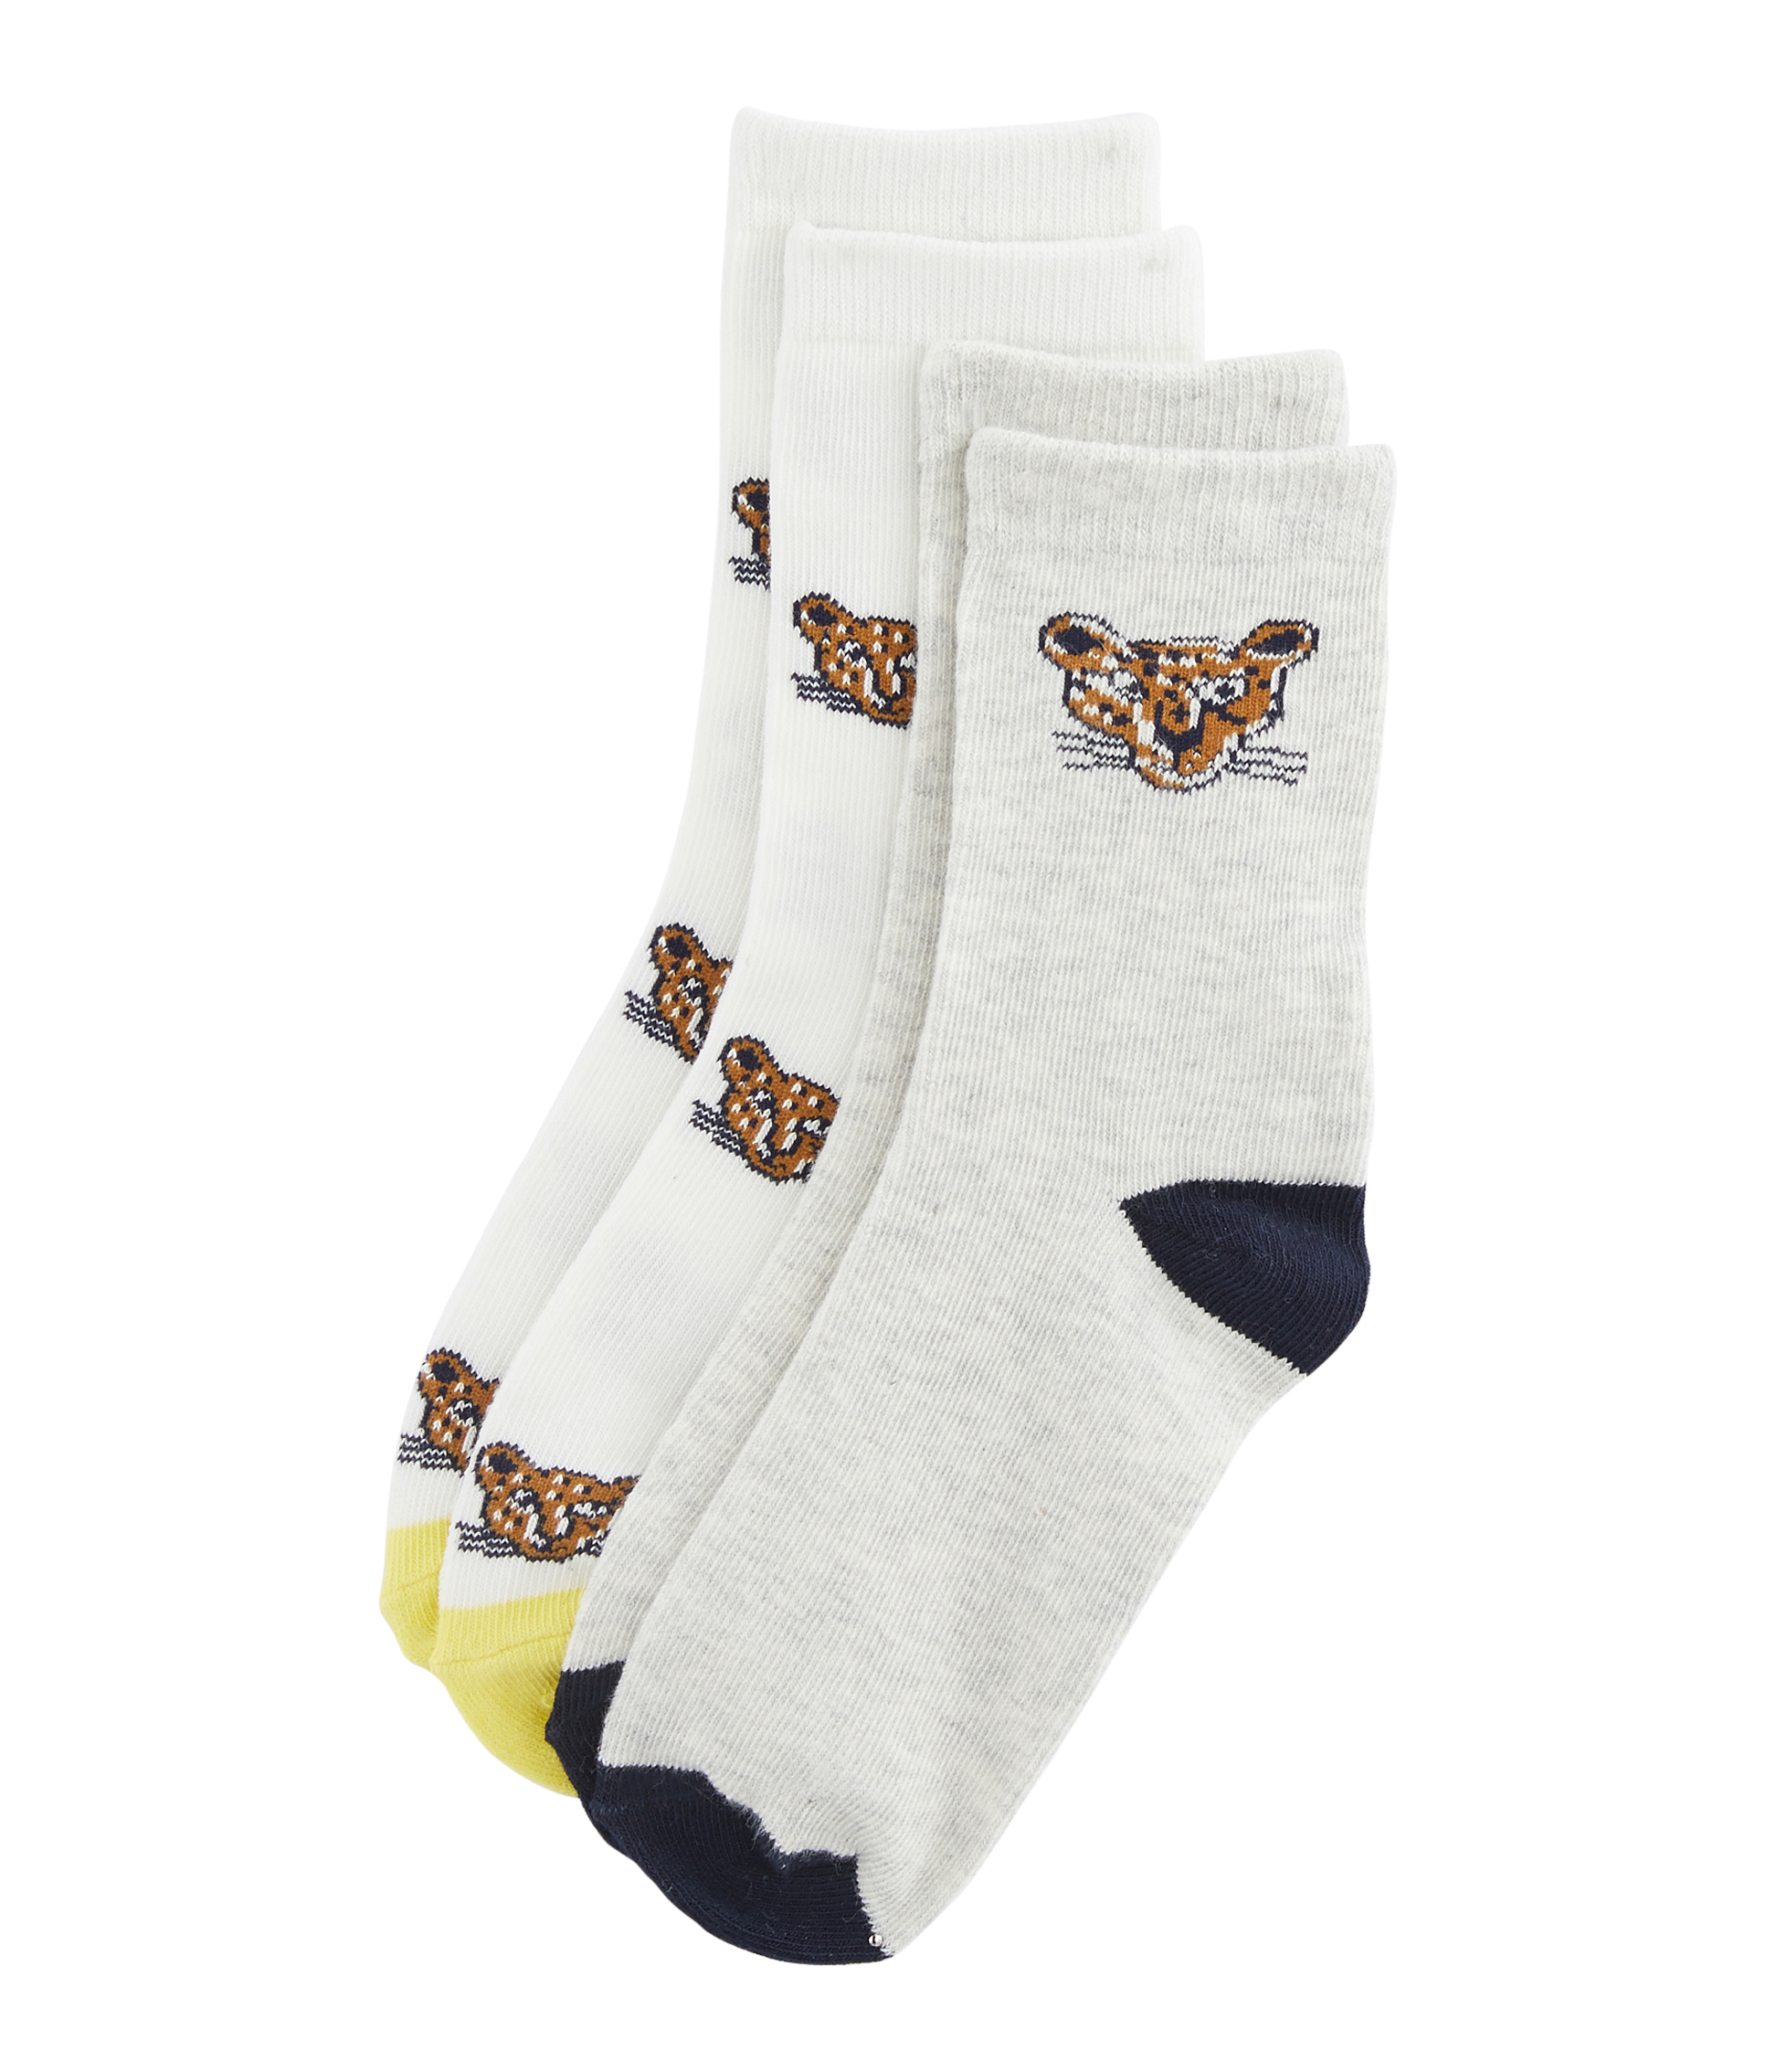 Set of 2 pairs of socks for boys